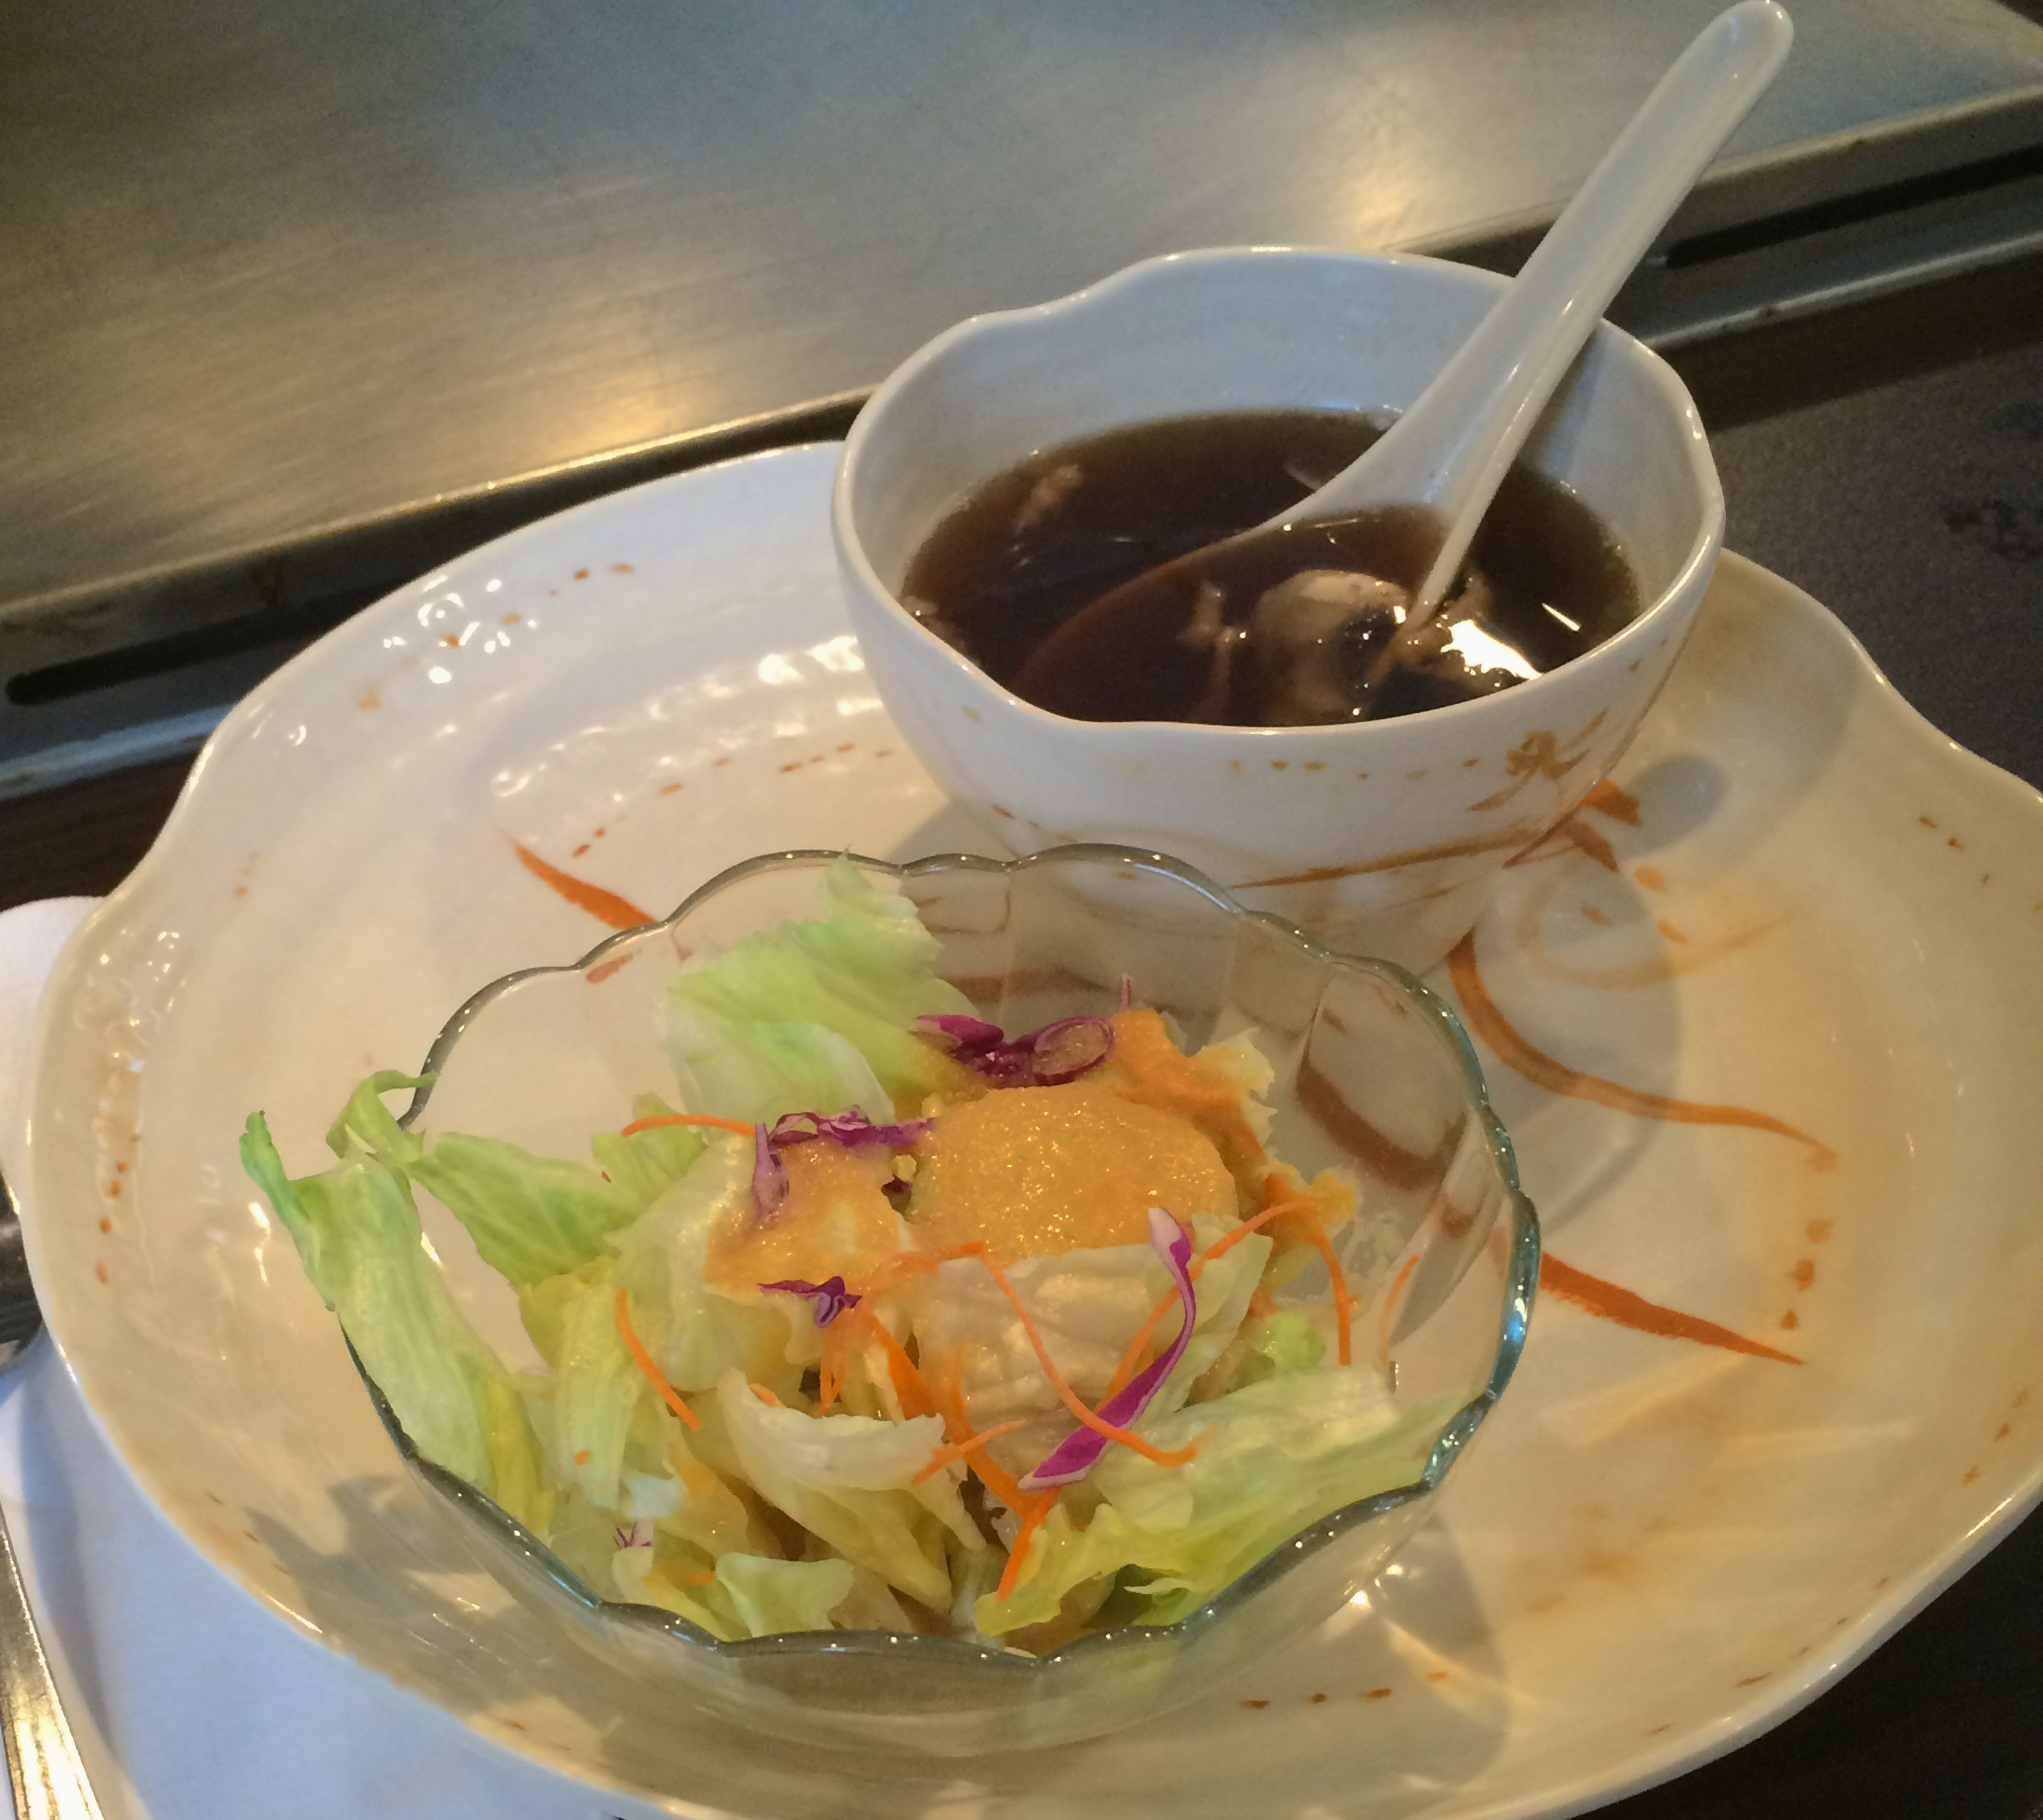 Ginger salad and miso mushroom soup is served as an appetizer.  (Photo provided by Christina Madera)